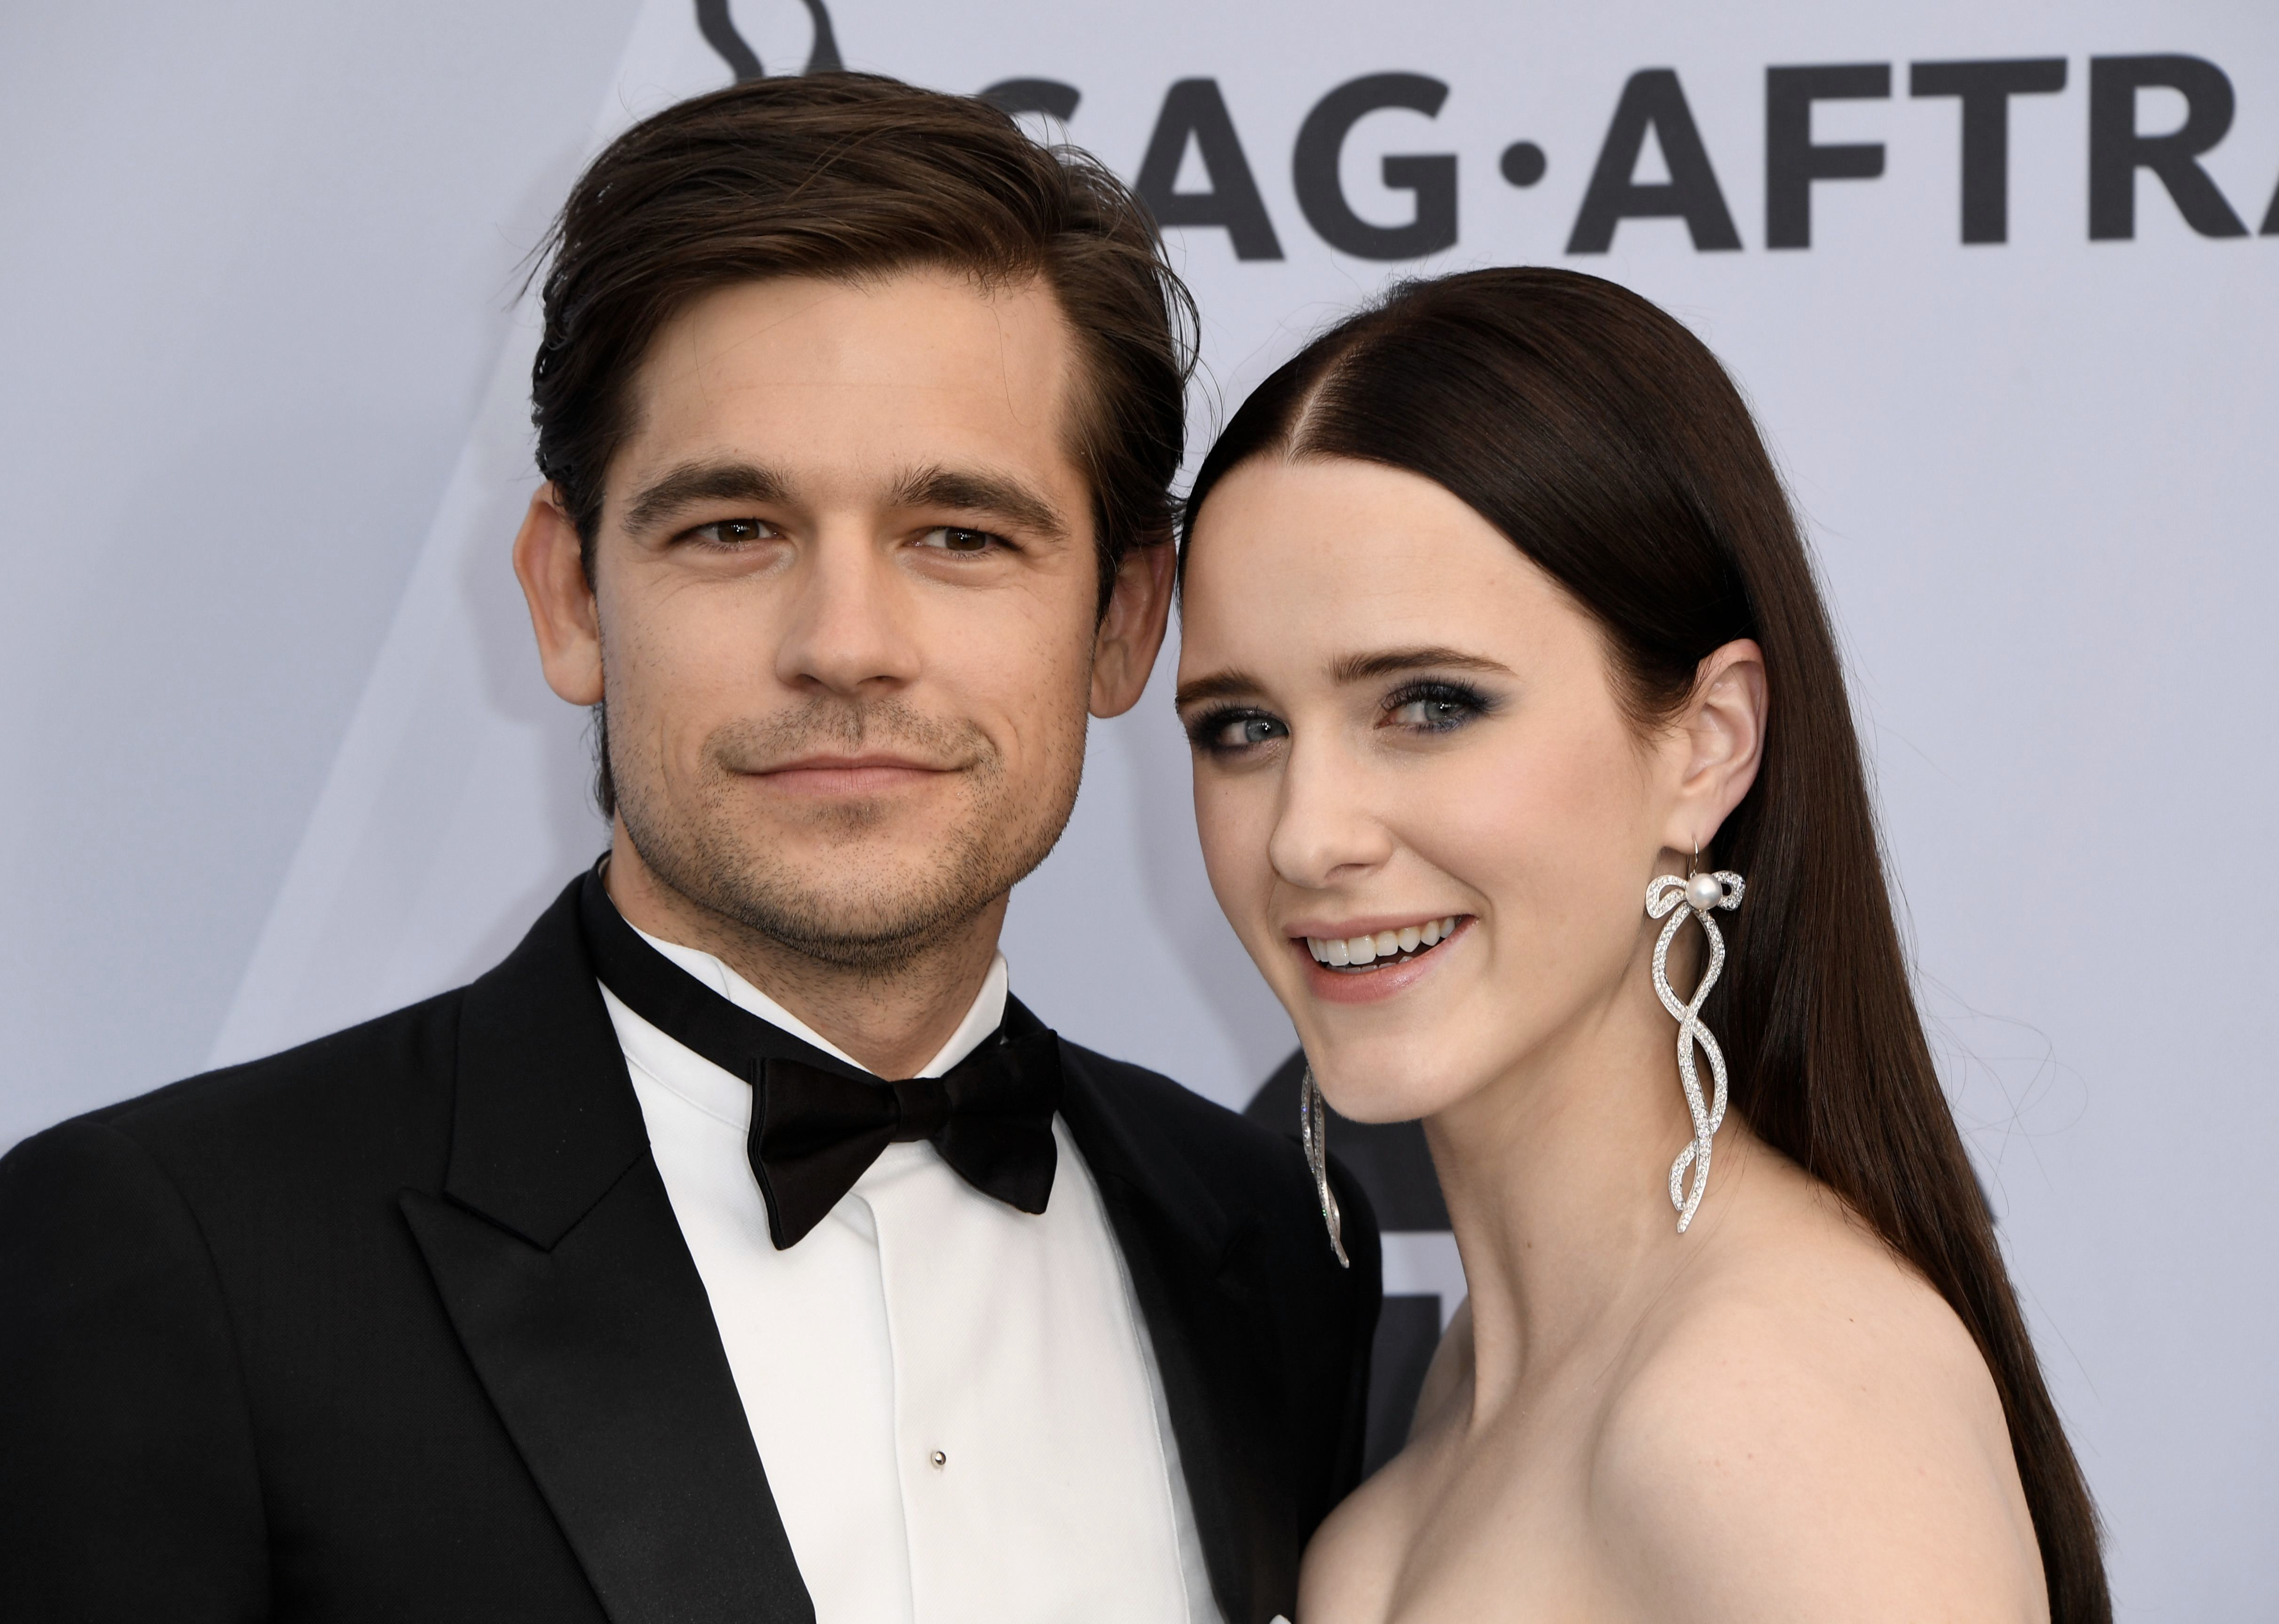 Outstanding Performance by a Female Actor in a Comedy Series for 'The Marvelous Mrs. Maisel' nominee Rachel Brosnahan and Jason Ralph arrive for the 25th Annual Screen Actors Guild Awards at the Shrine Auditorium in Los Angeles on January 27, 2019. (Photo by Mark RALSTON / AFP)        (Photo credit should read MARK RALSTON/AFP/Getty Images)